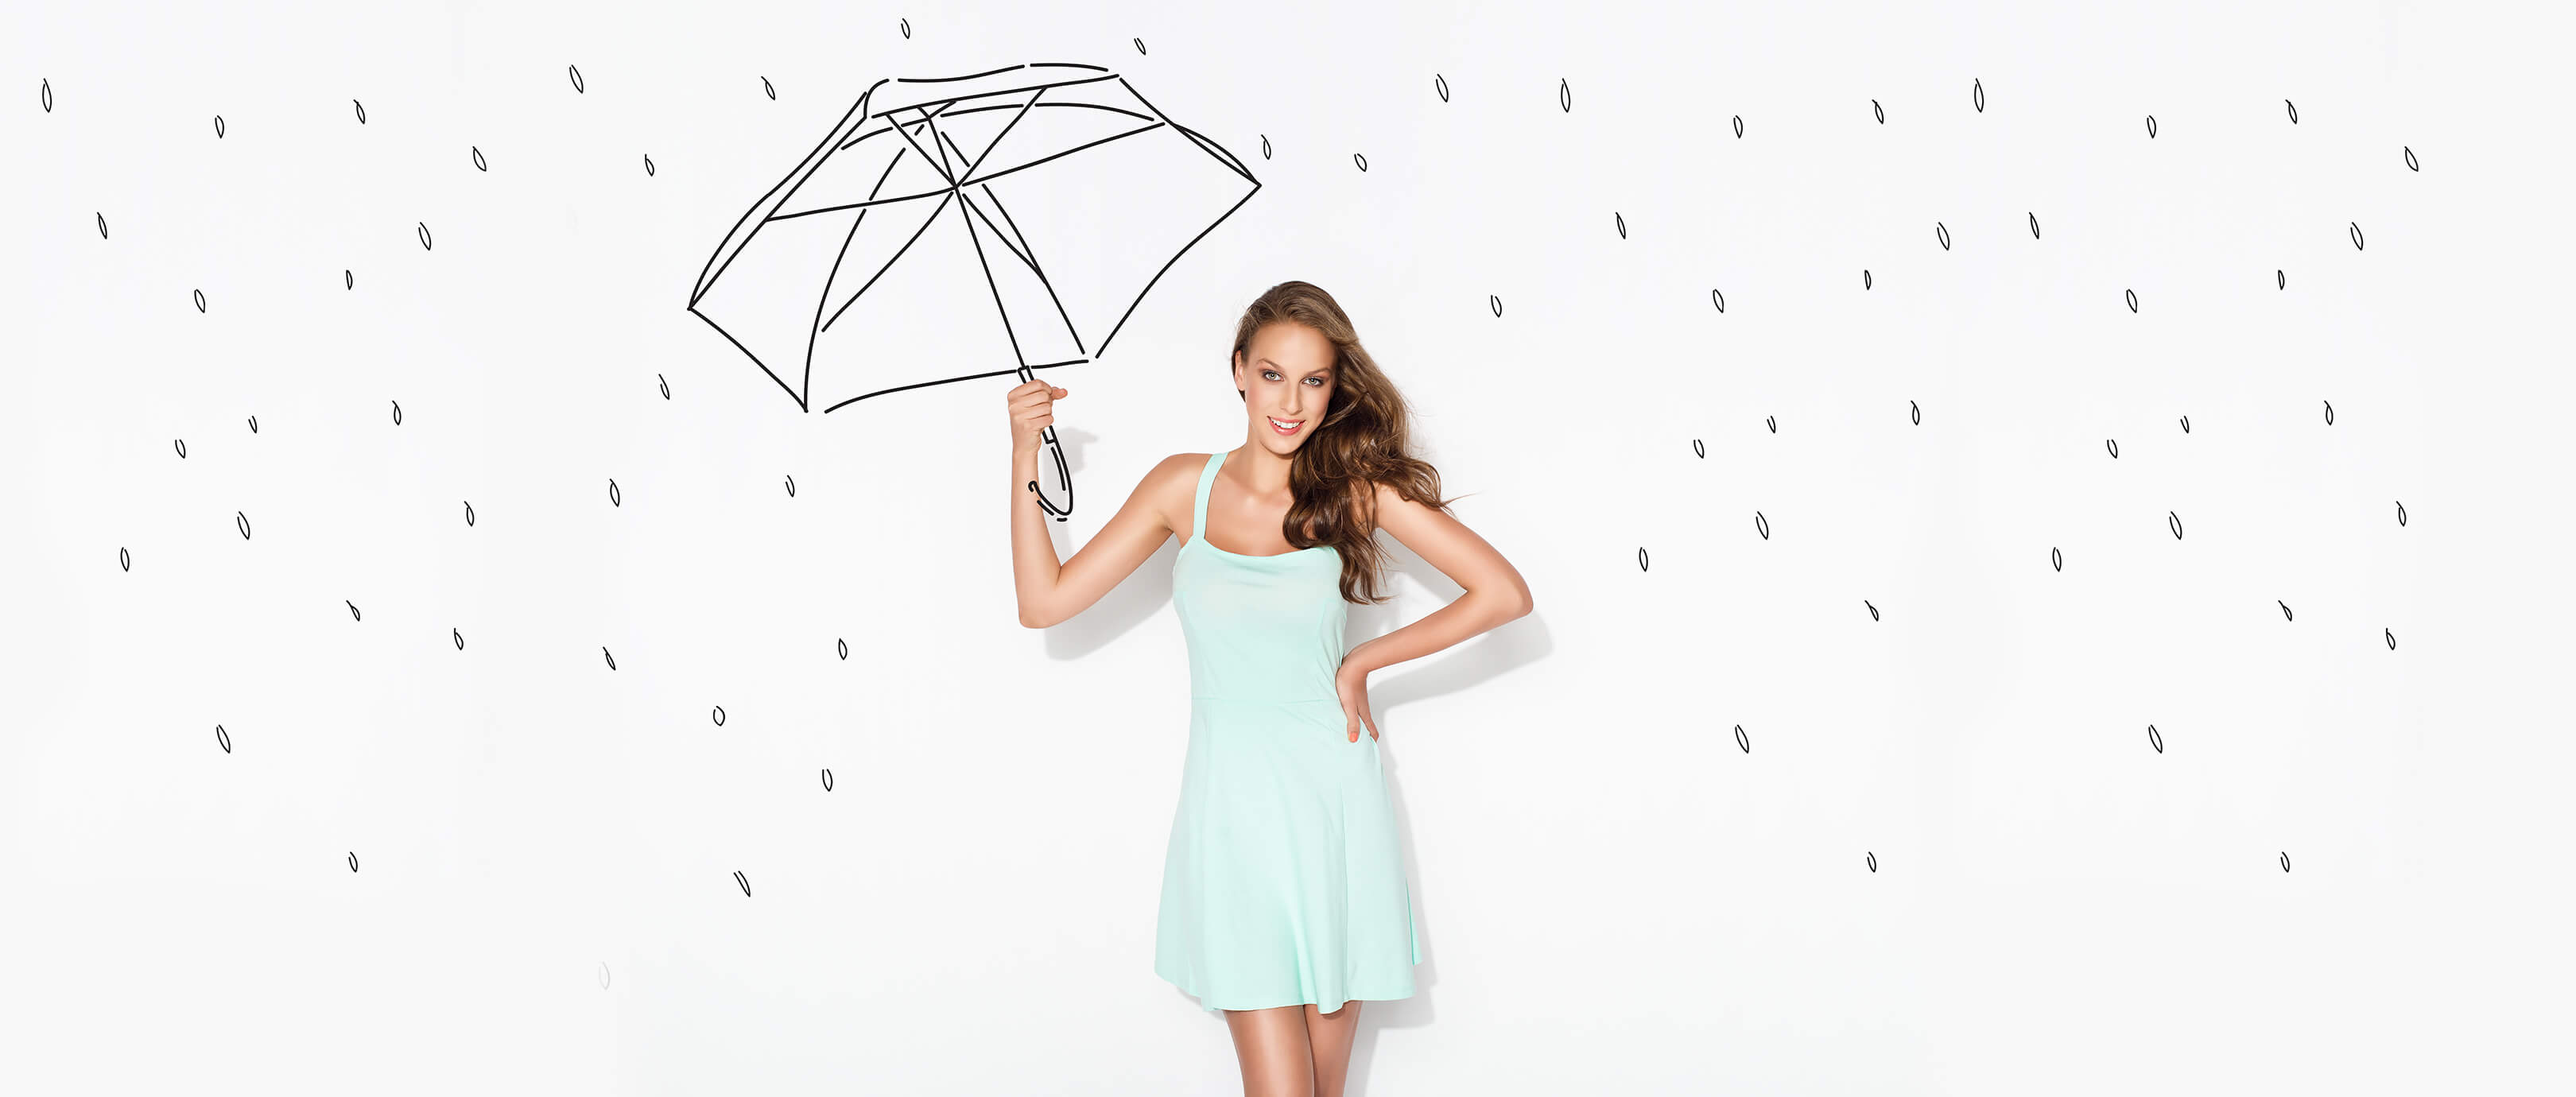 Monsoon Accessories Check: 10 Essentials for Every Budget